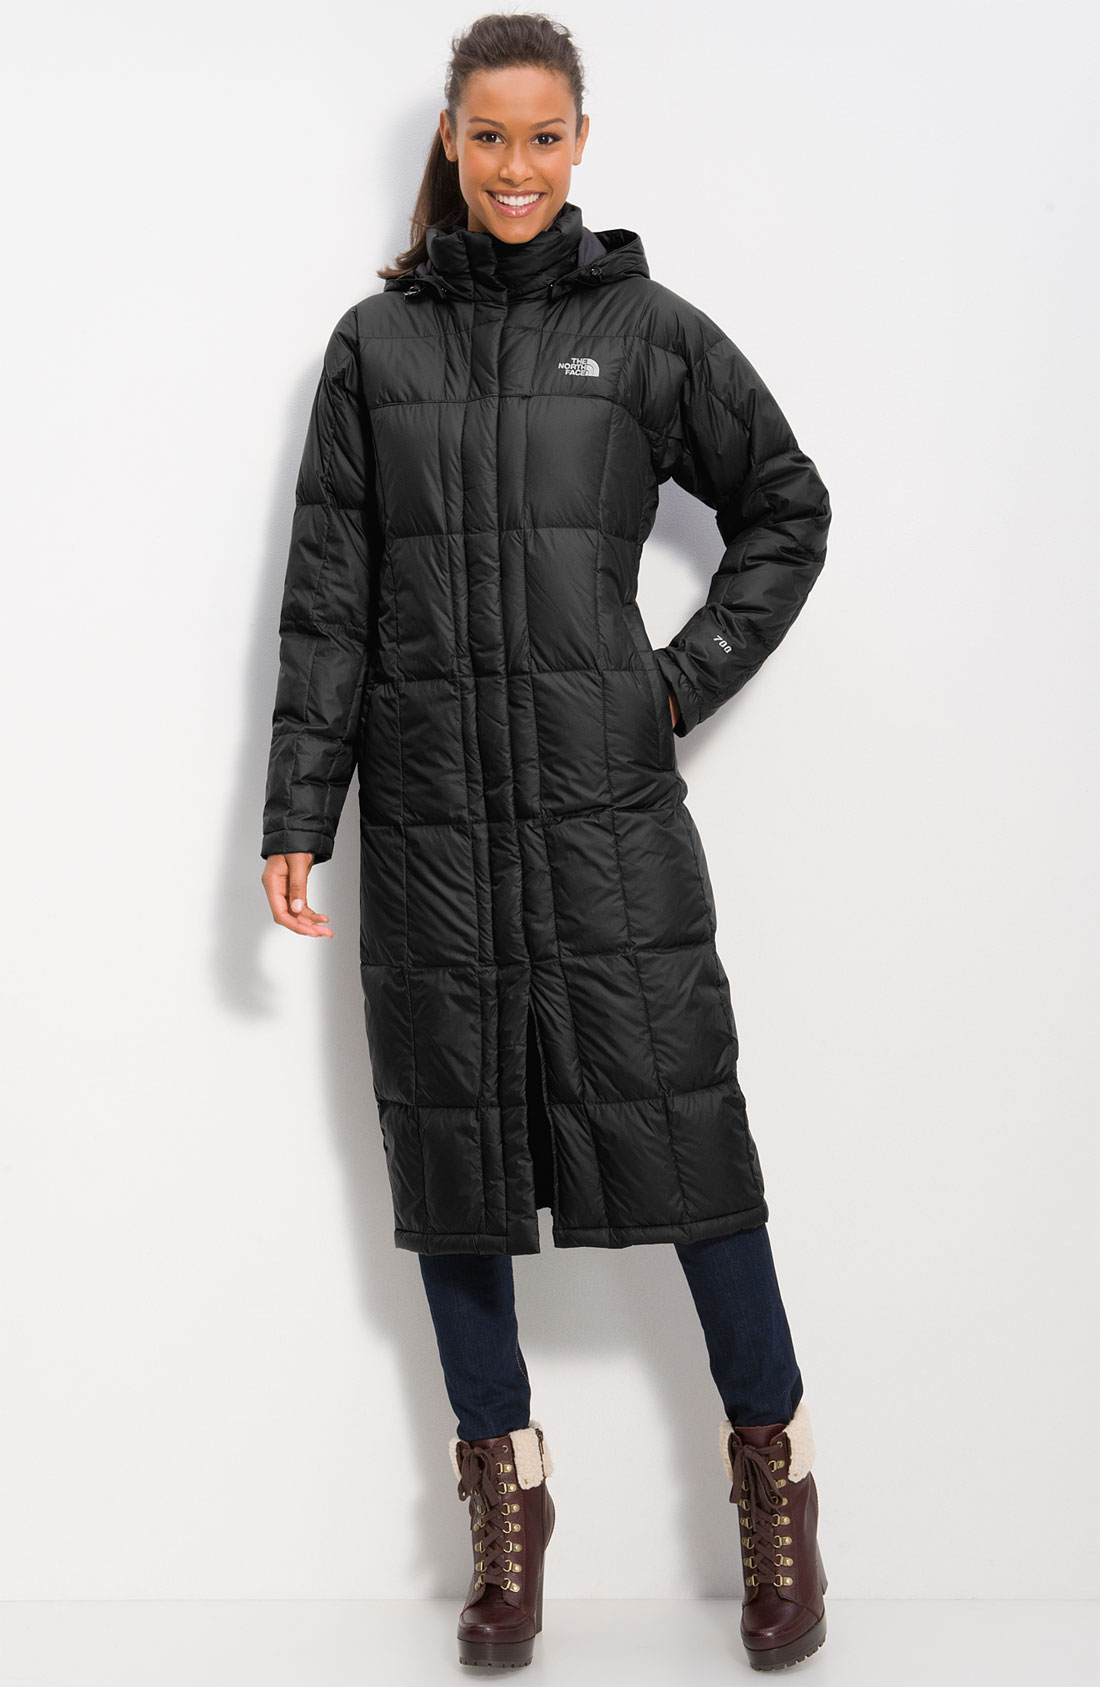 North face long coats for women